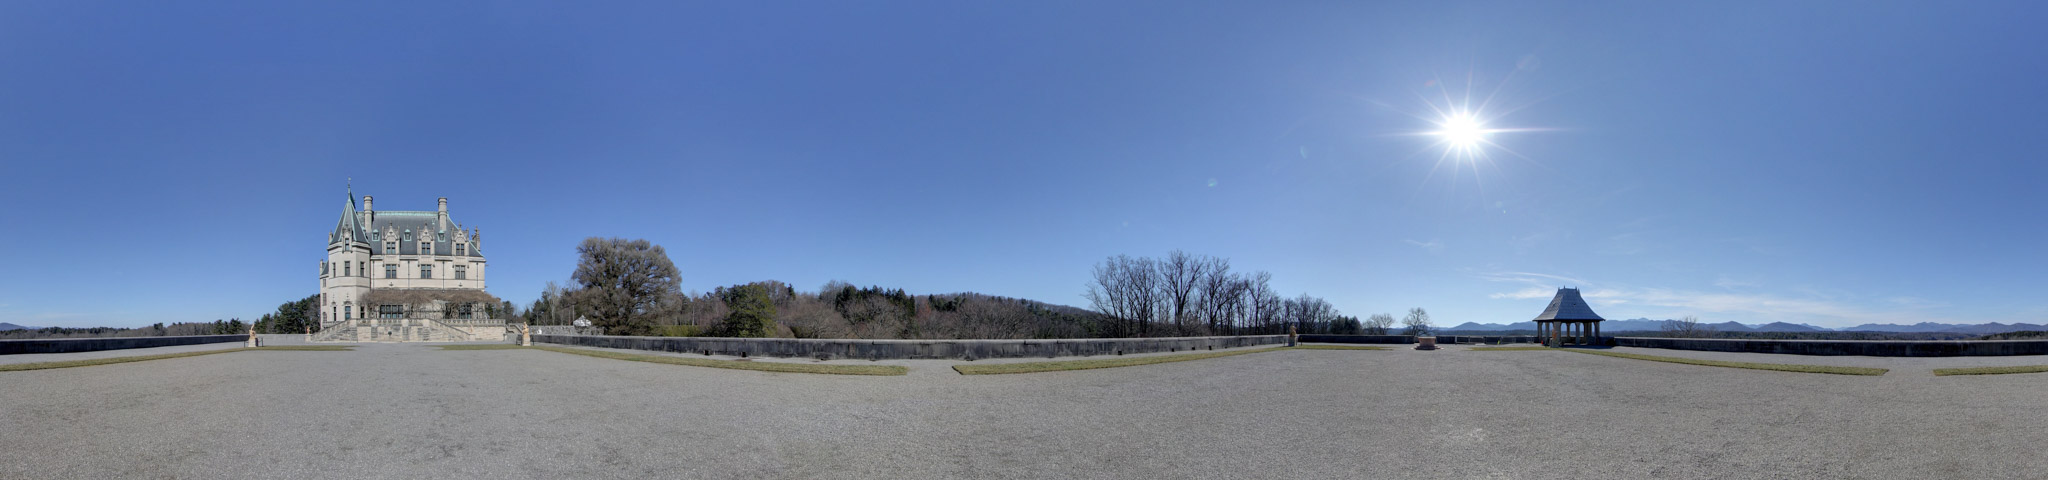 Panoramic view of the South Terrace at Biltmore Estate in Asheville.